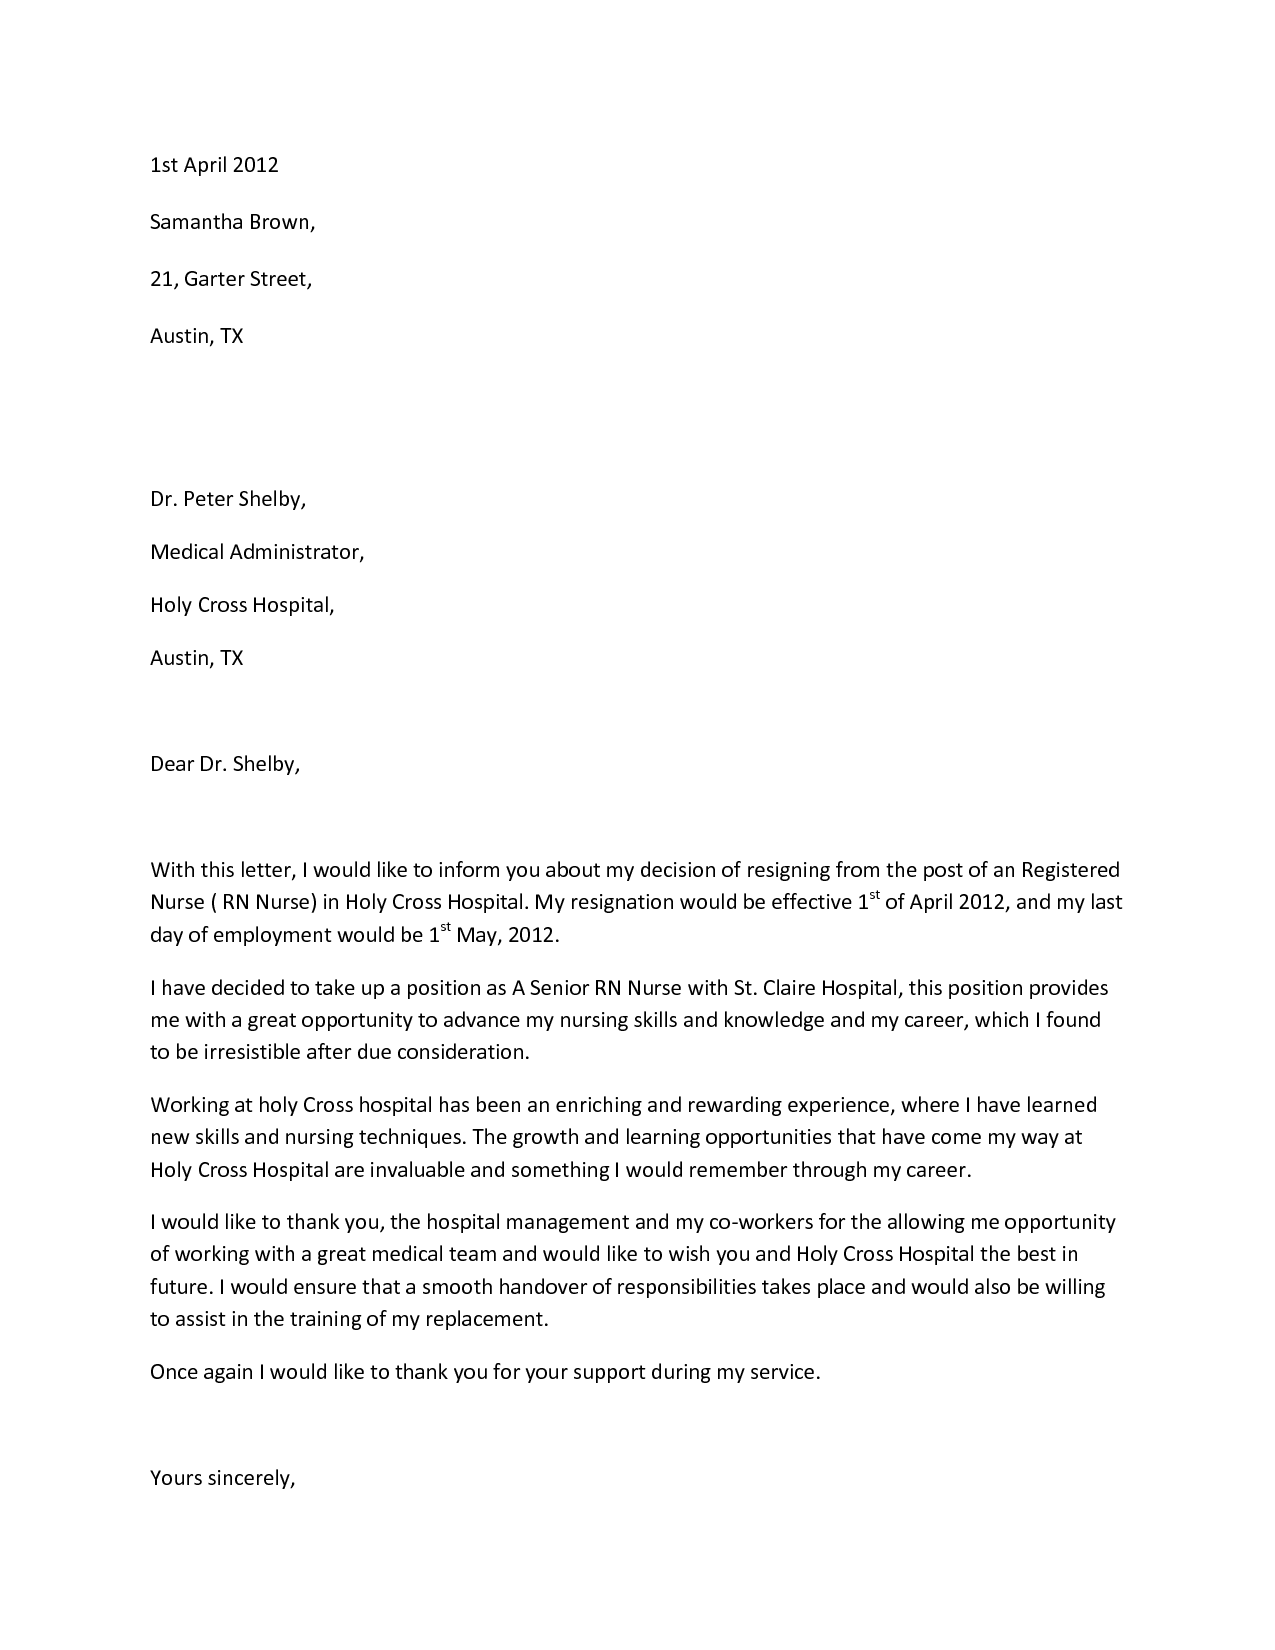 future opportunities cover letter - sample resignation letterwriting a letter of resignation